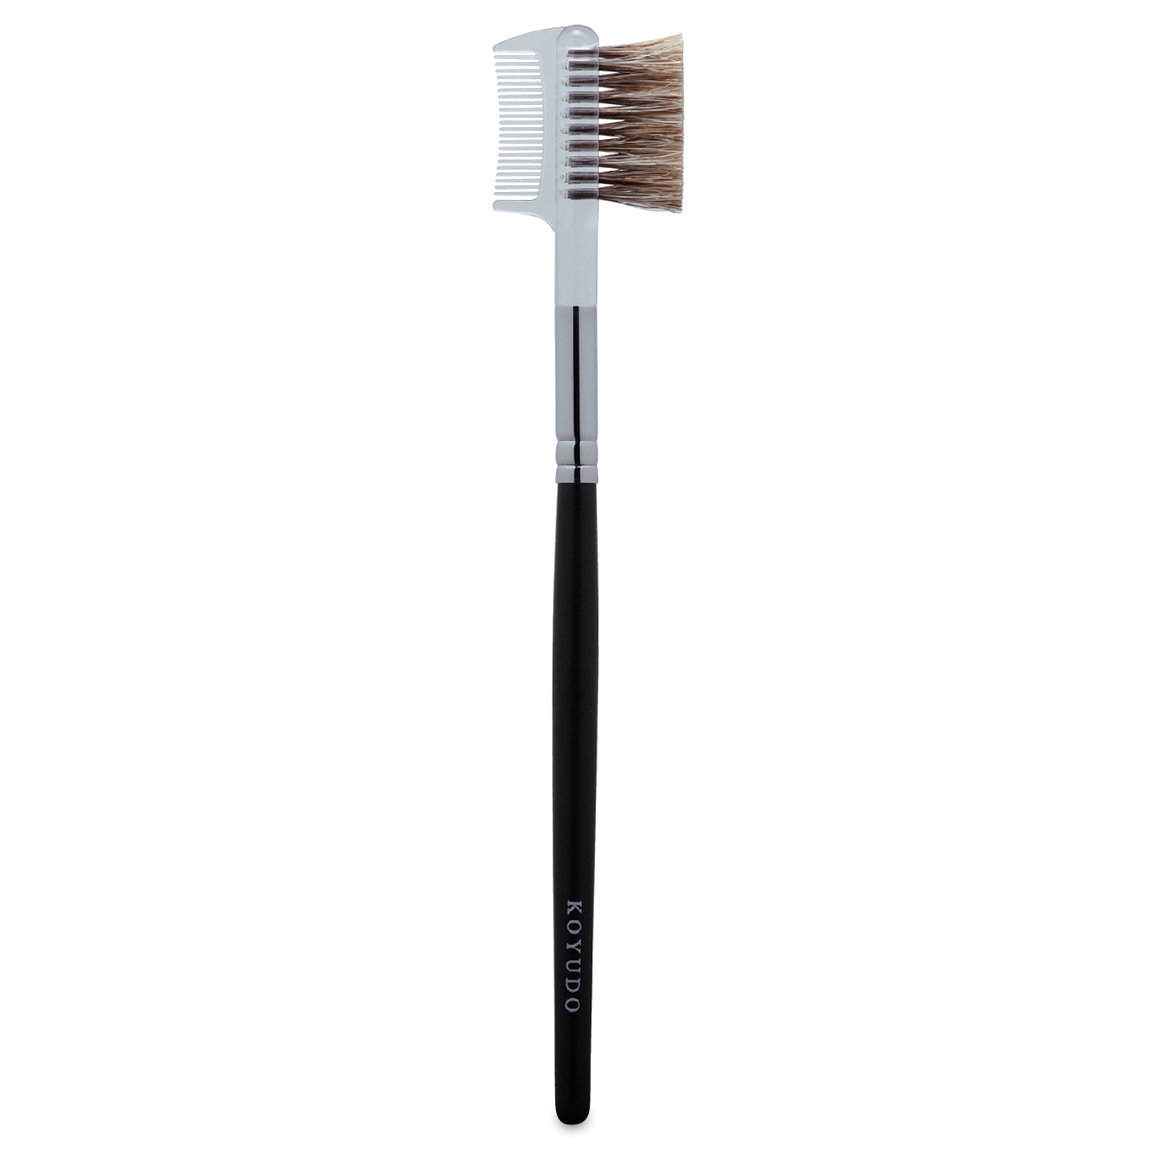 KOYUDO Casual Series C-47 Brush & Comb Clear product swatch.